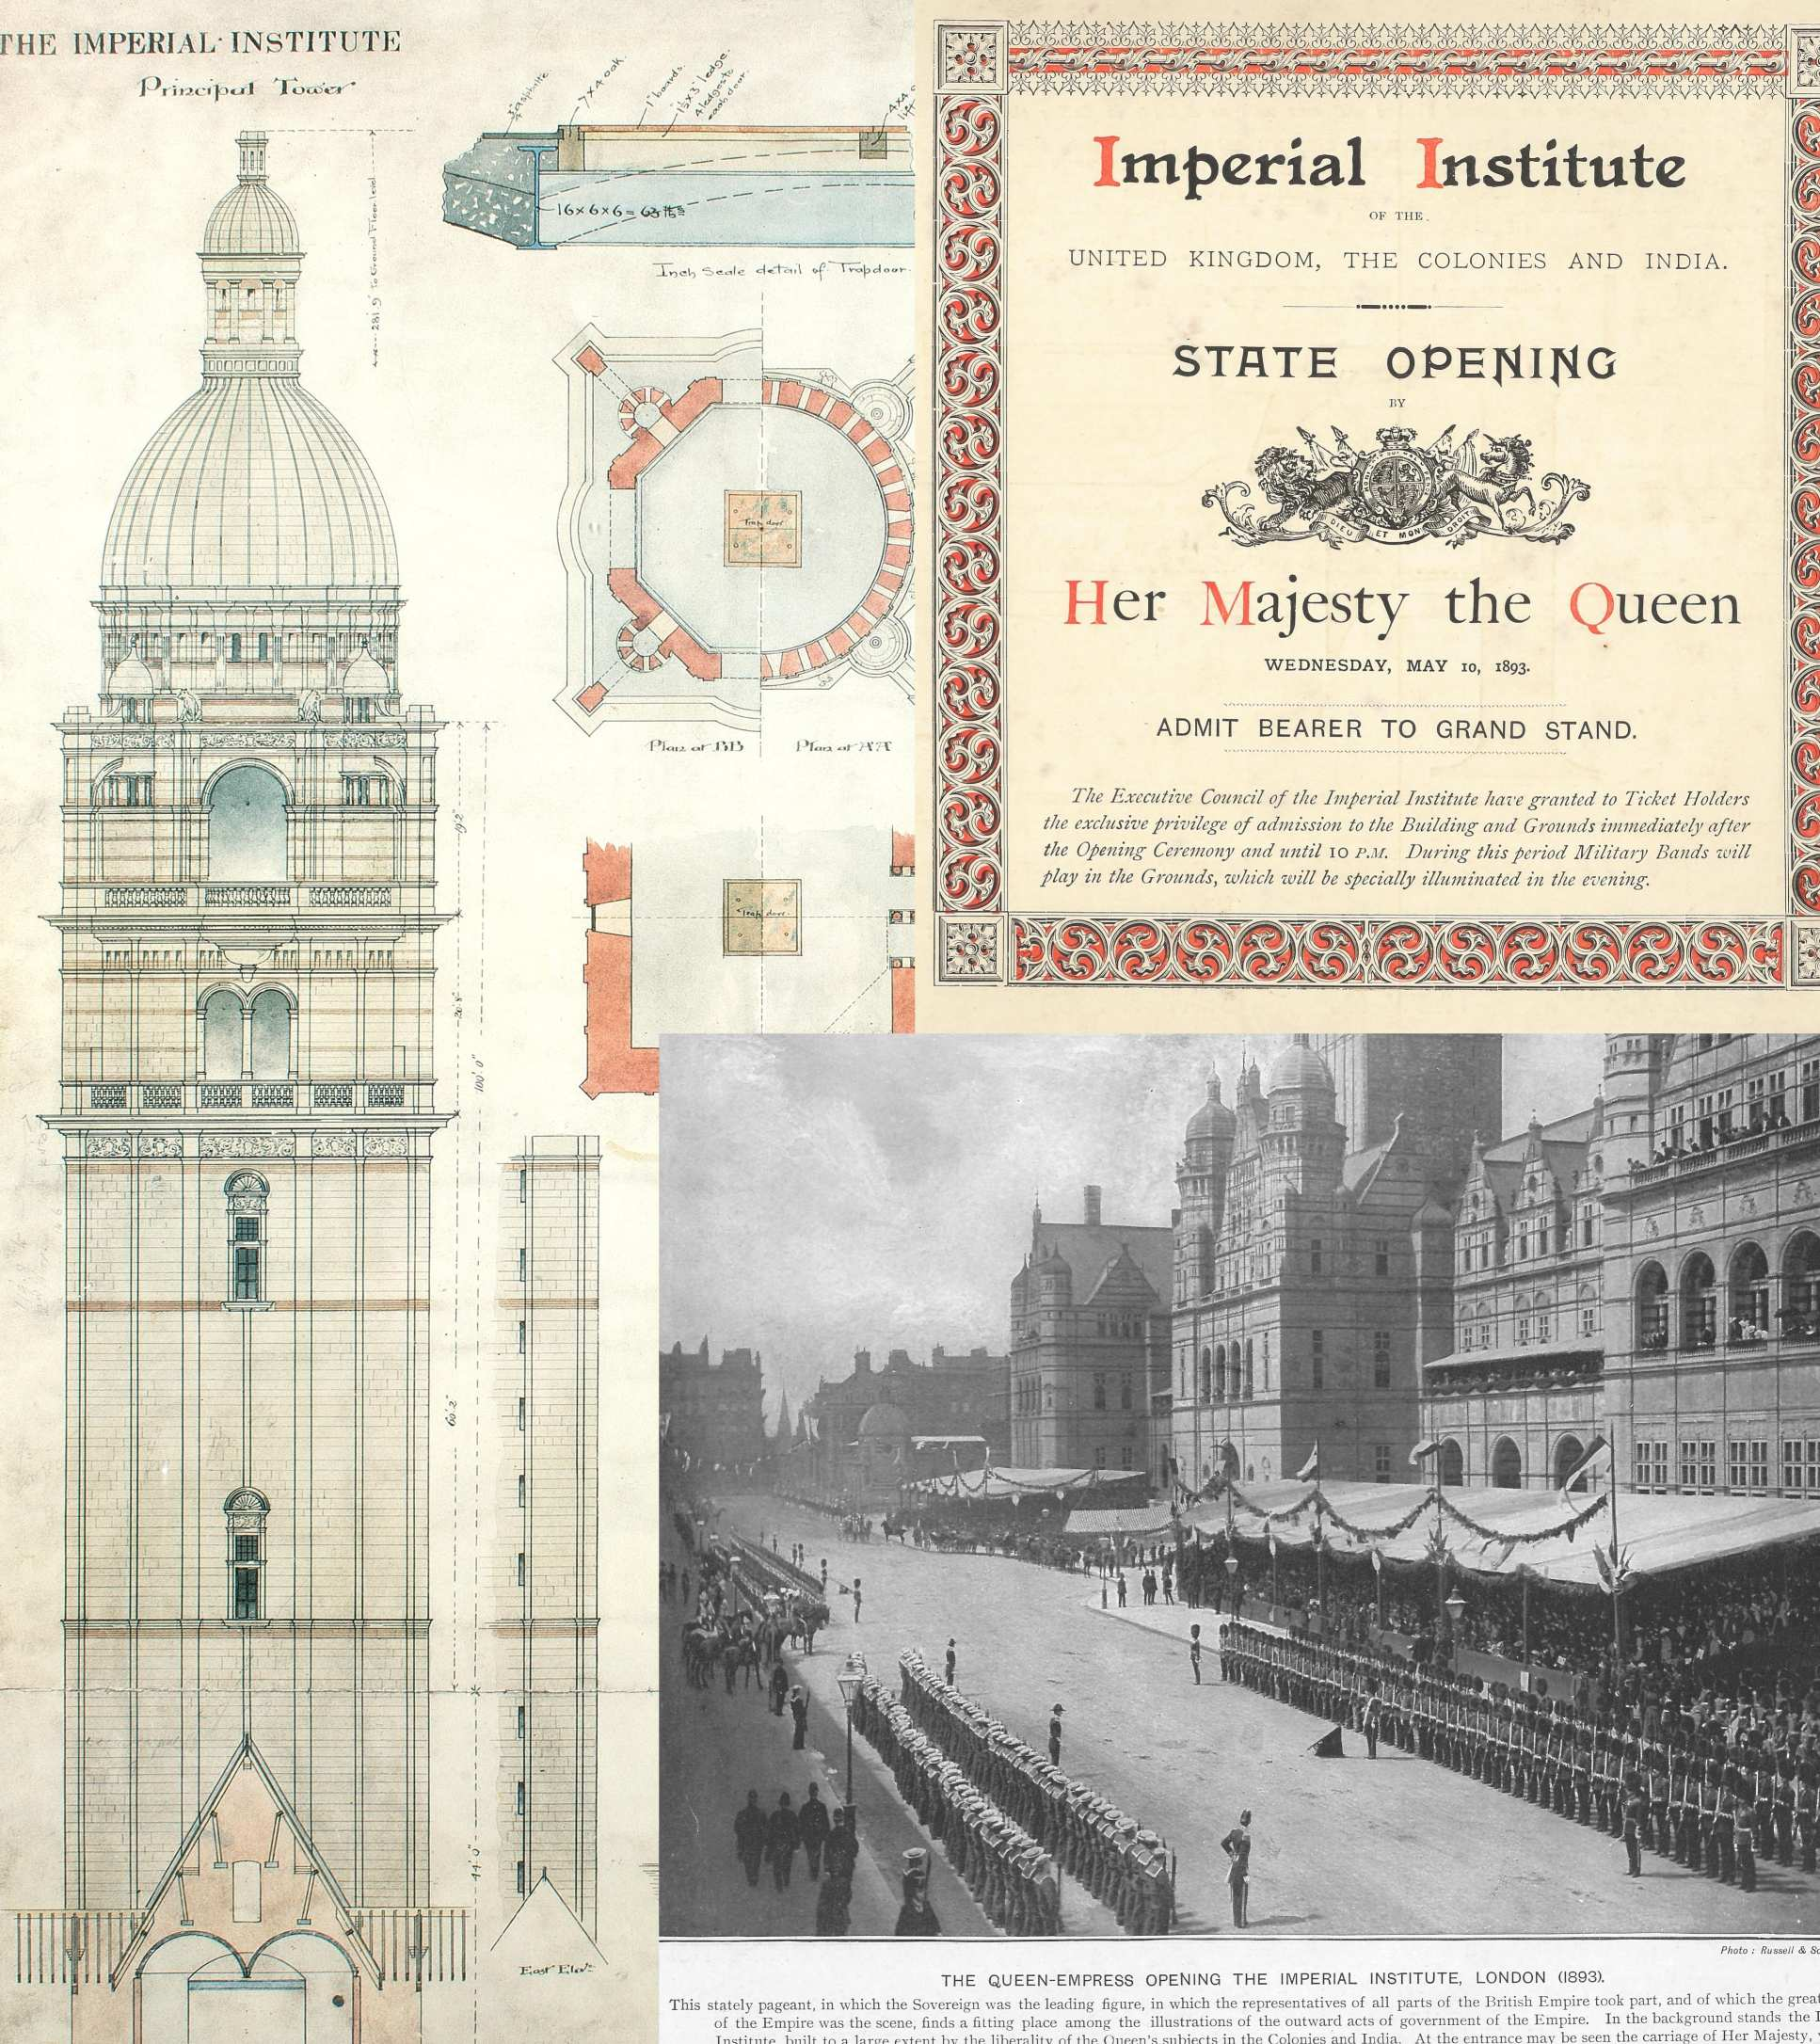 Items from the Imperial College Archives relating to the Queen's Tower - plan, ticket to state Opening and news report